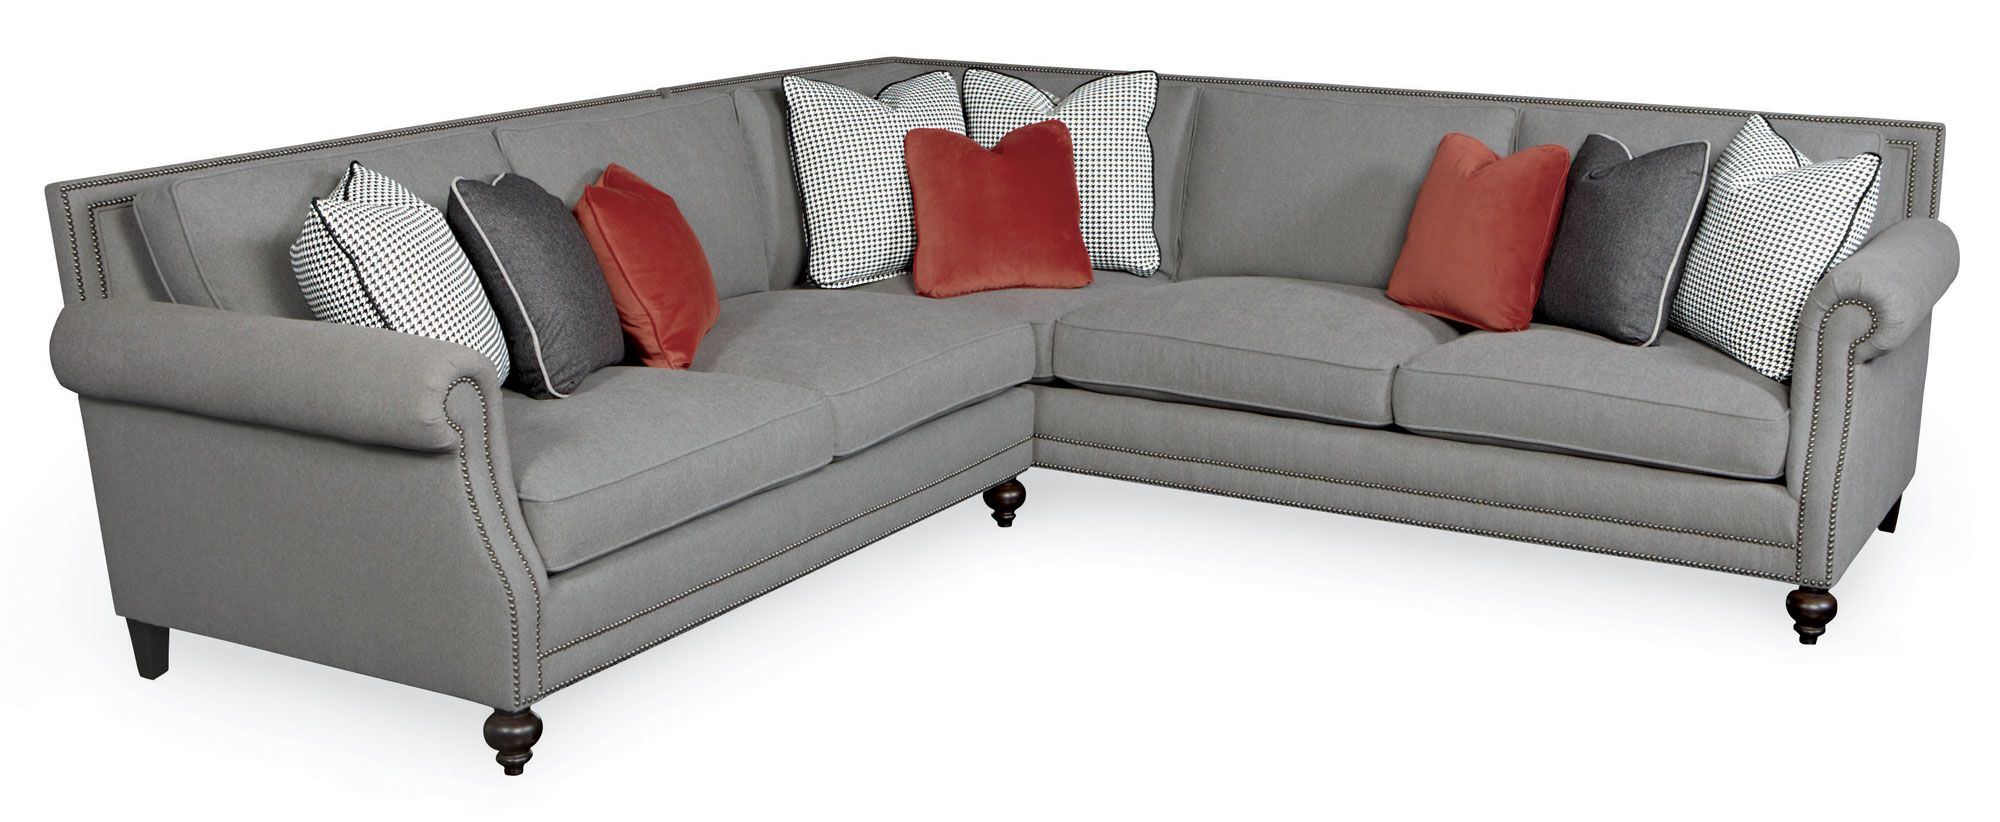 bernhardt brae sectional sofa fabric designs malaysia b6893 b6842 barns